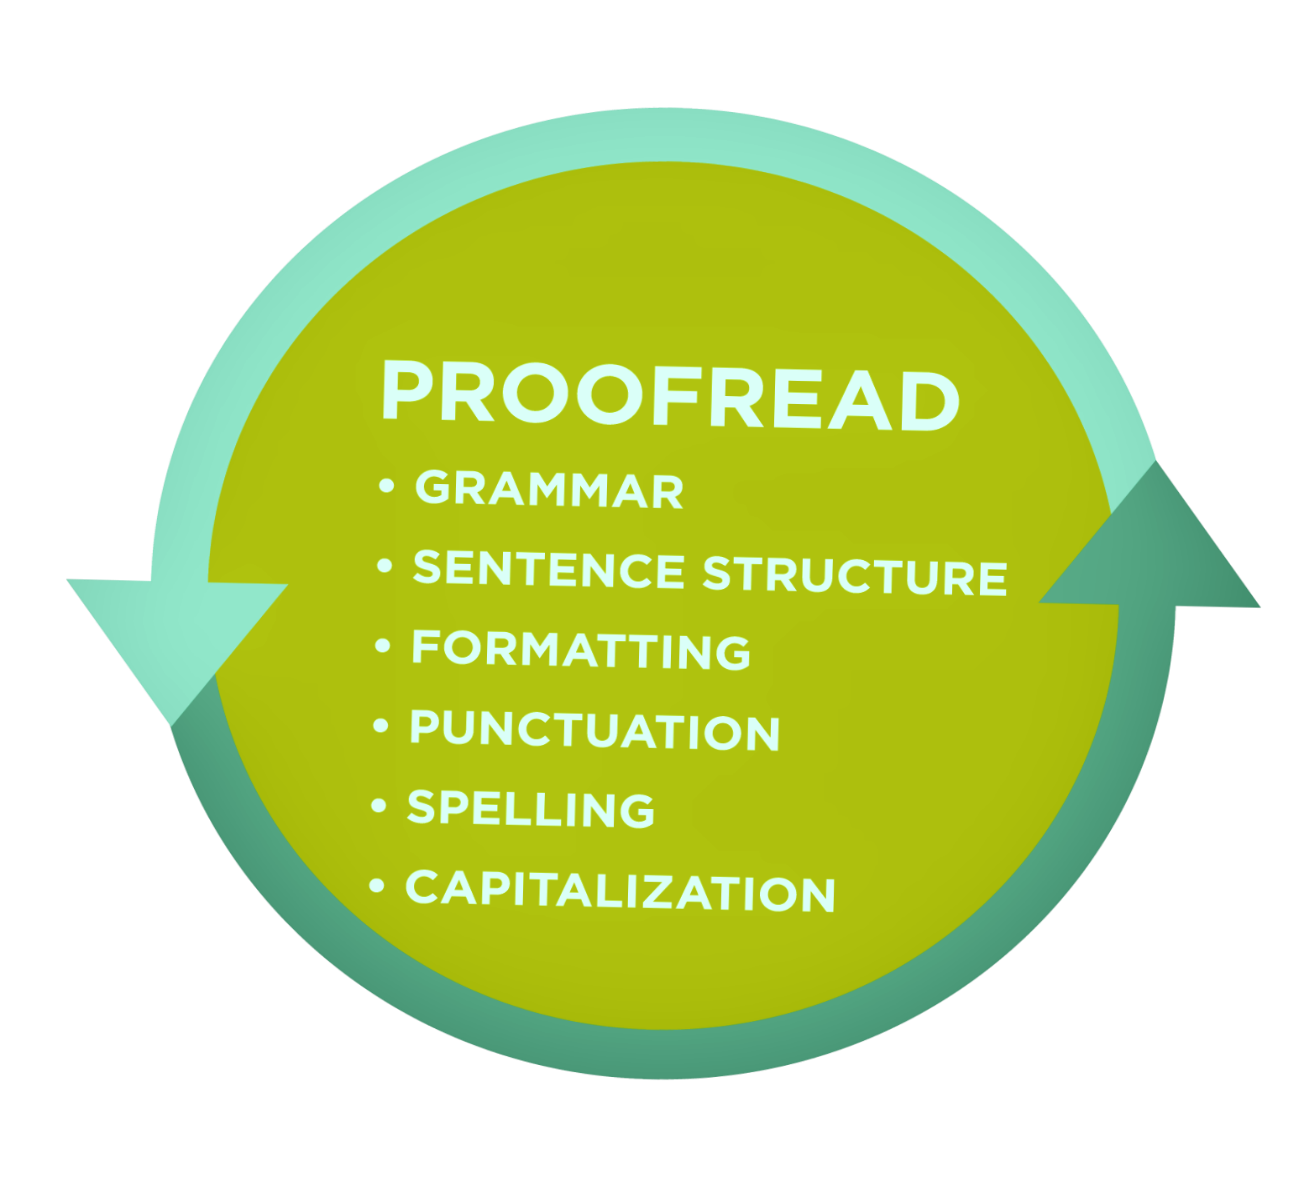 7 Ways to Use Technology to Become a Better Essay Writer Proofread image